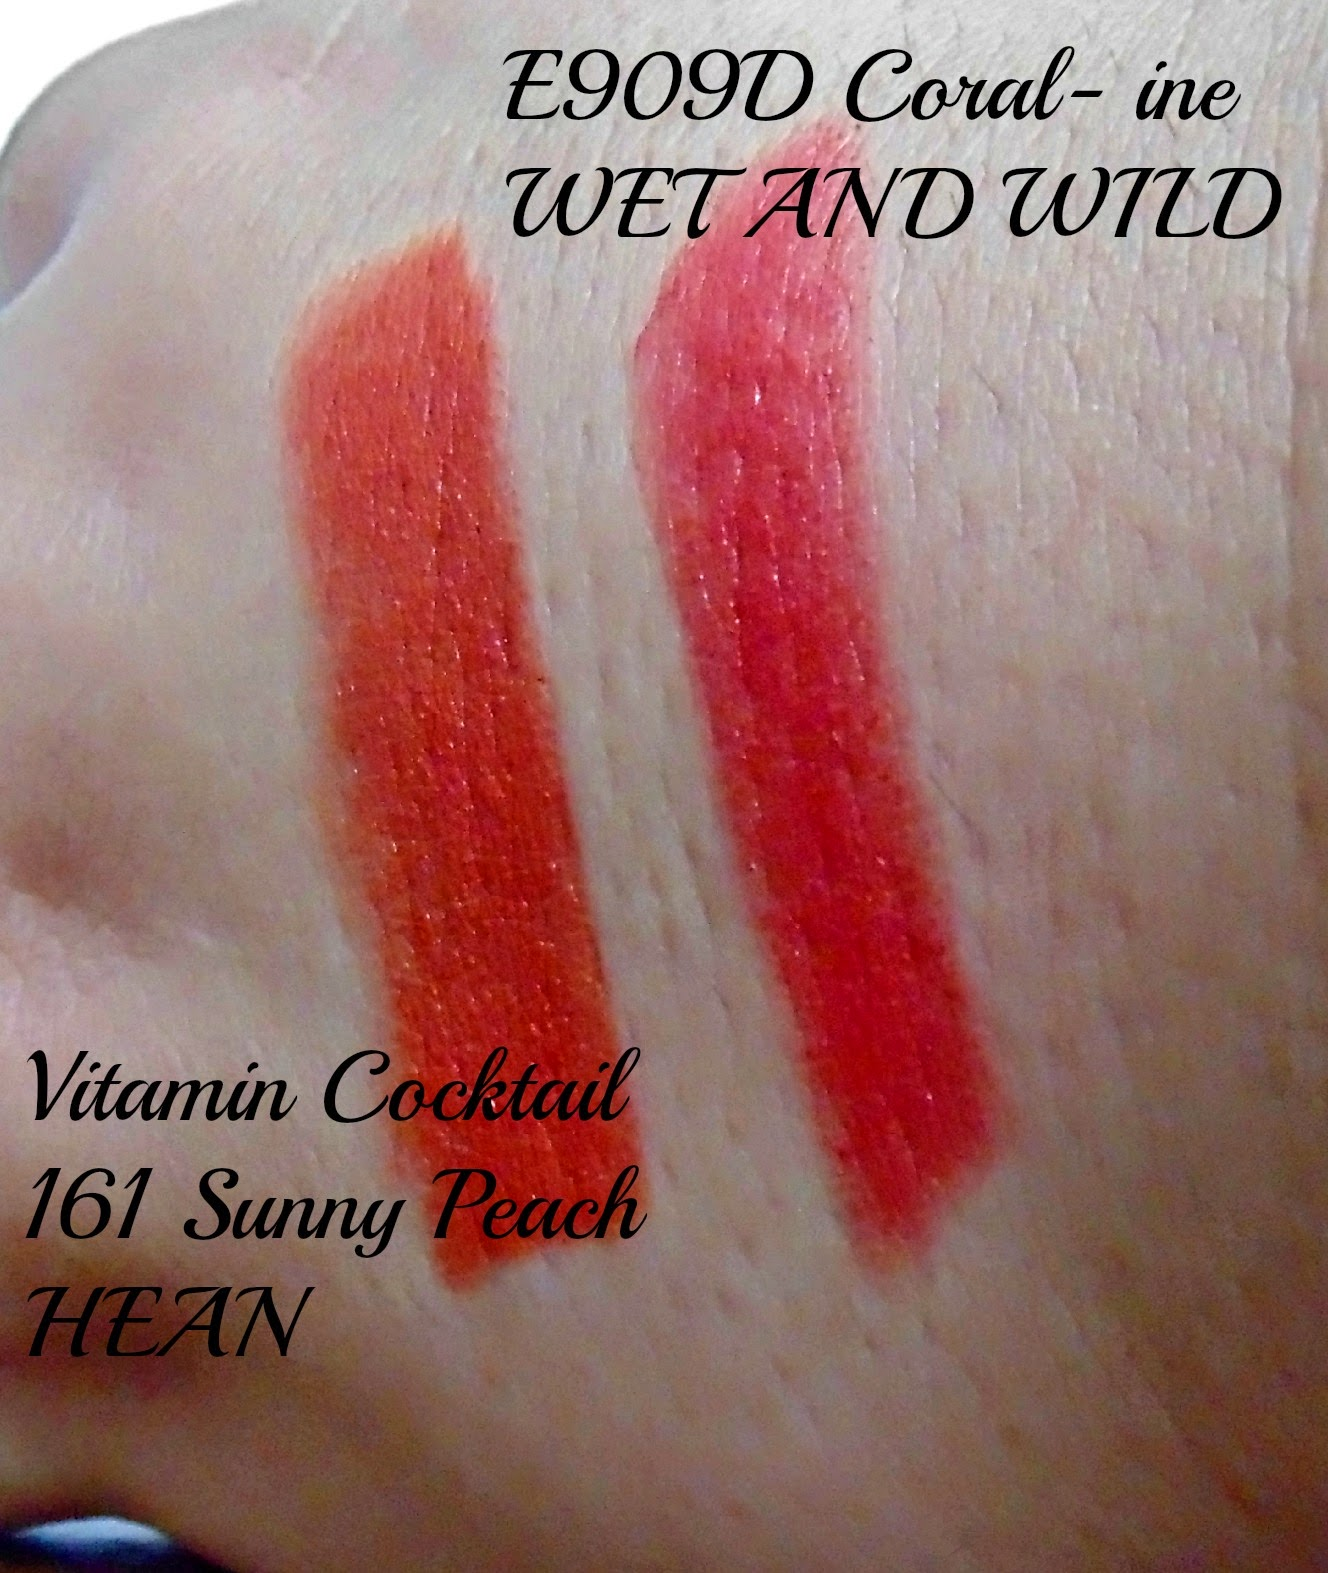 Wet and Wild coral-ine y Hean